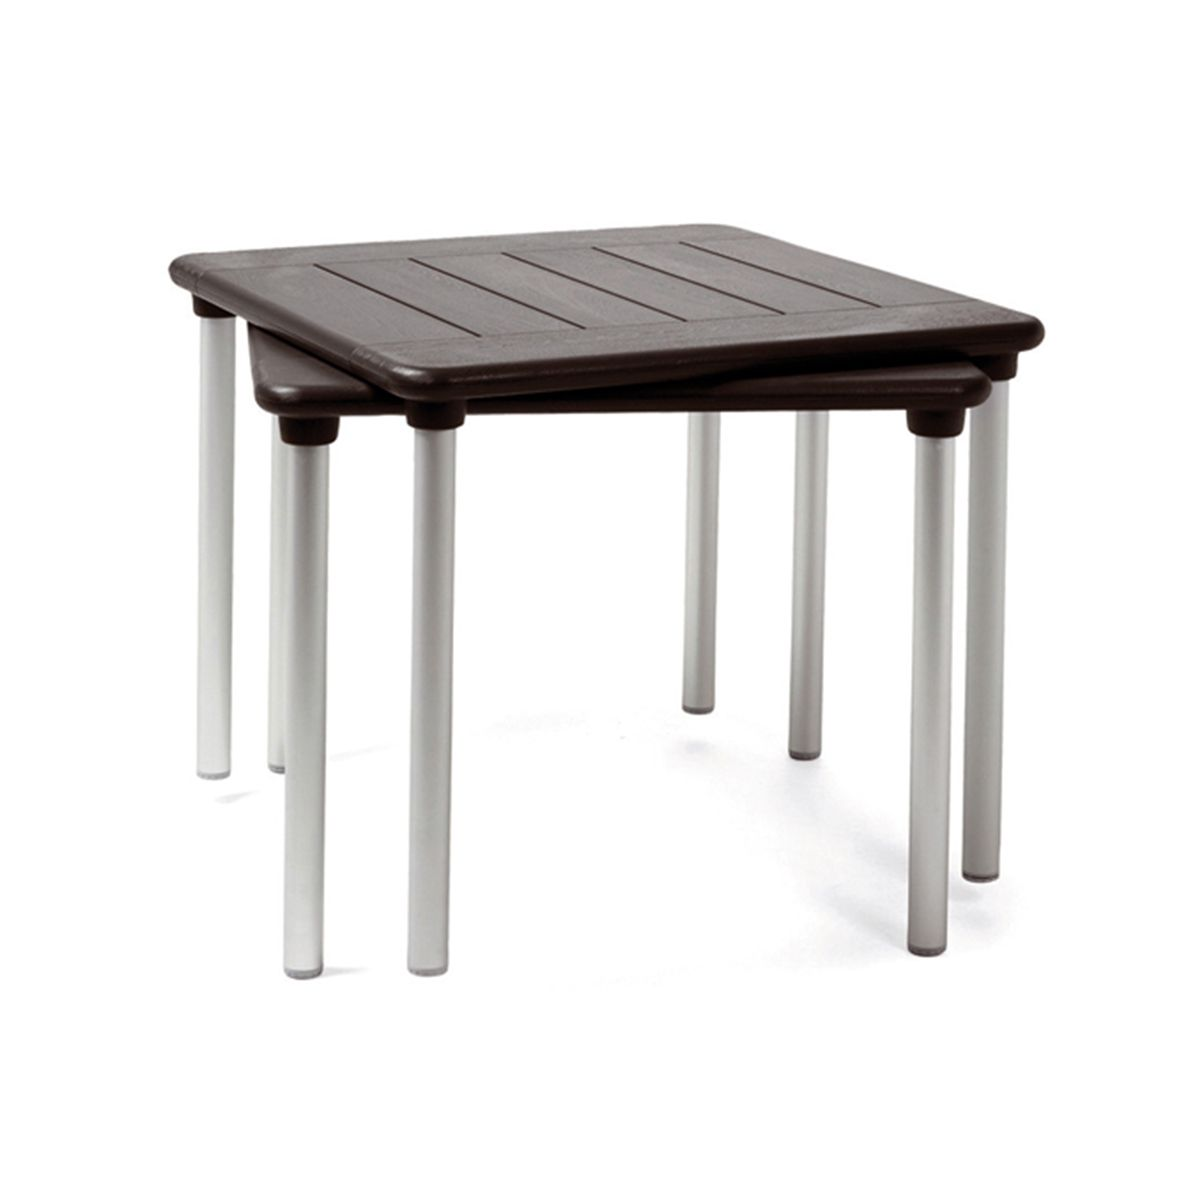 Table d appoint jardin terrasse maestrale nardi for Table jardin design